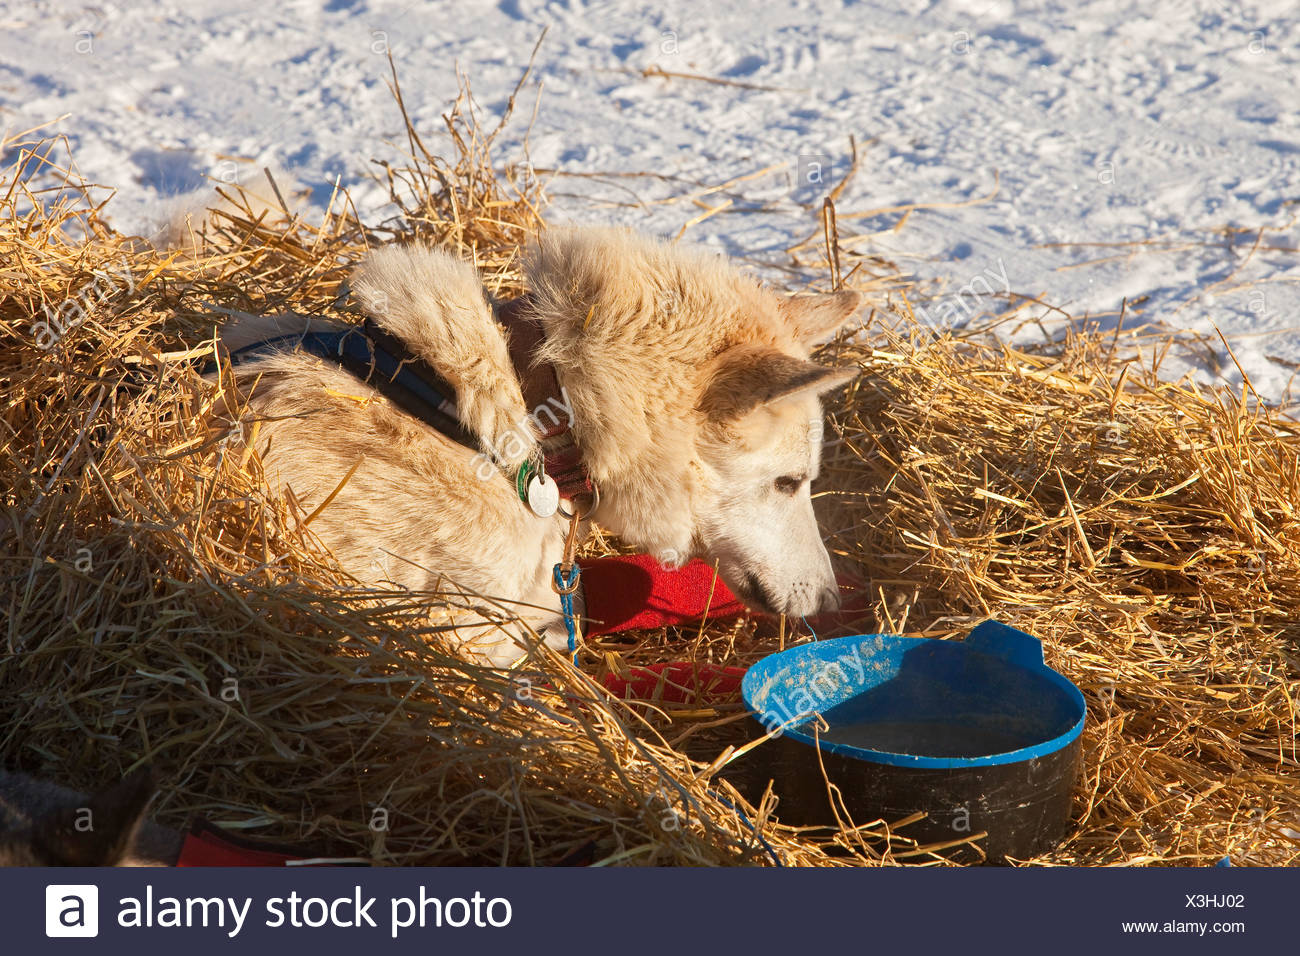 Sled dog looking at dog dish, wrist bandages, Alaskan Husky, straw, Pelly Crossing checkpoint, Yukon Quest 1, 000-mile - Stock Image